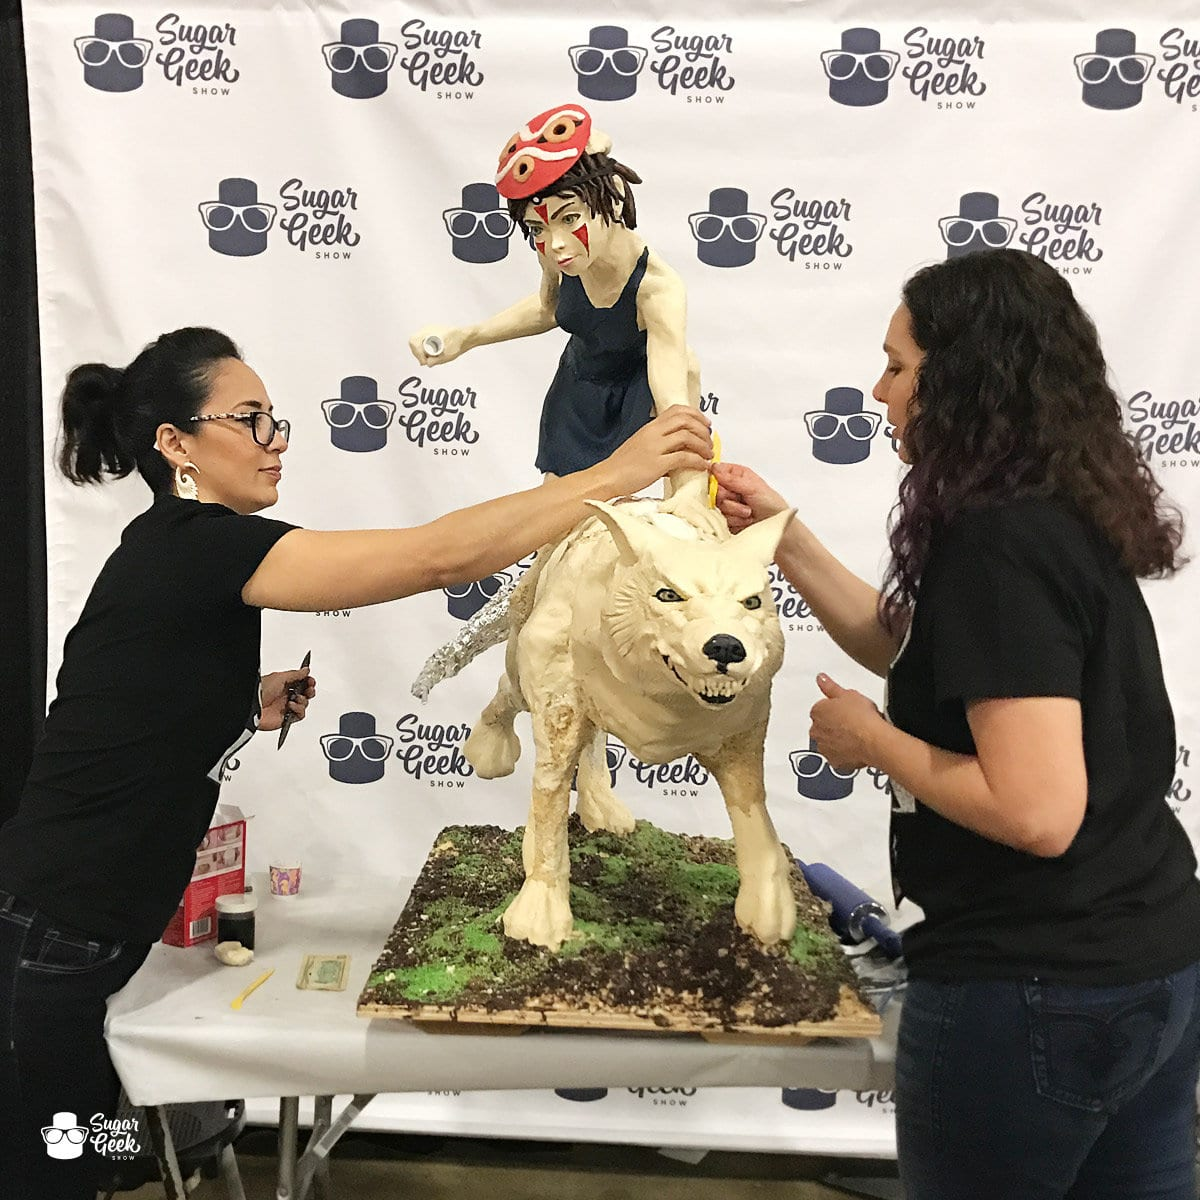 Princess Mononoke Cake Showpiece